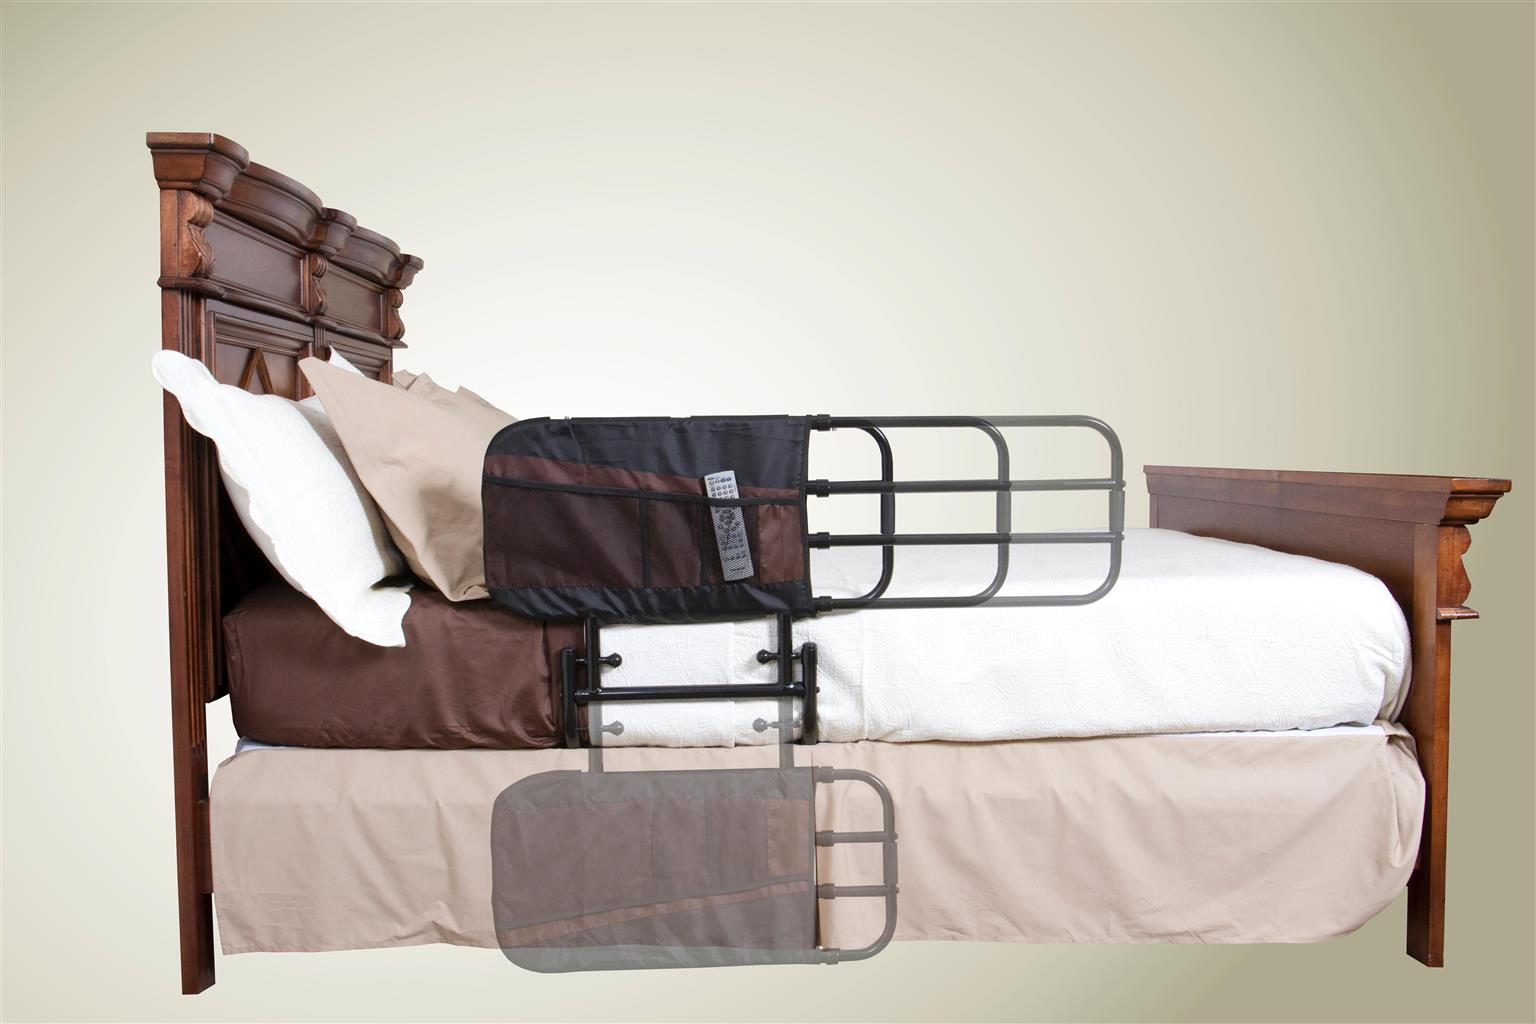 EZ Adjustable Bed Rail or Cot Side - Fits Almost All Standard Beds. FREE DELIVERY, while stocks last